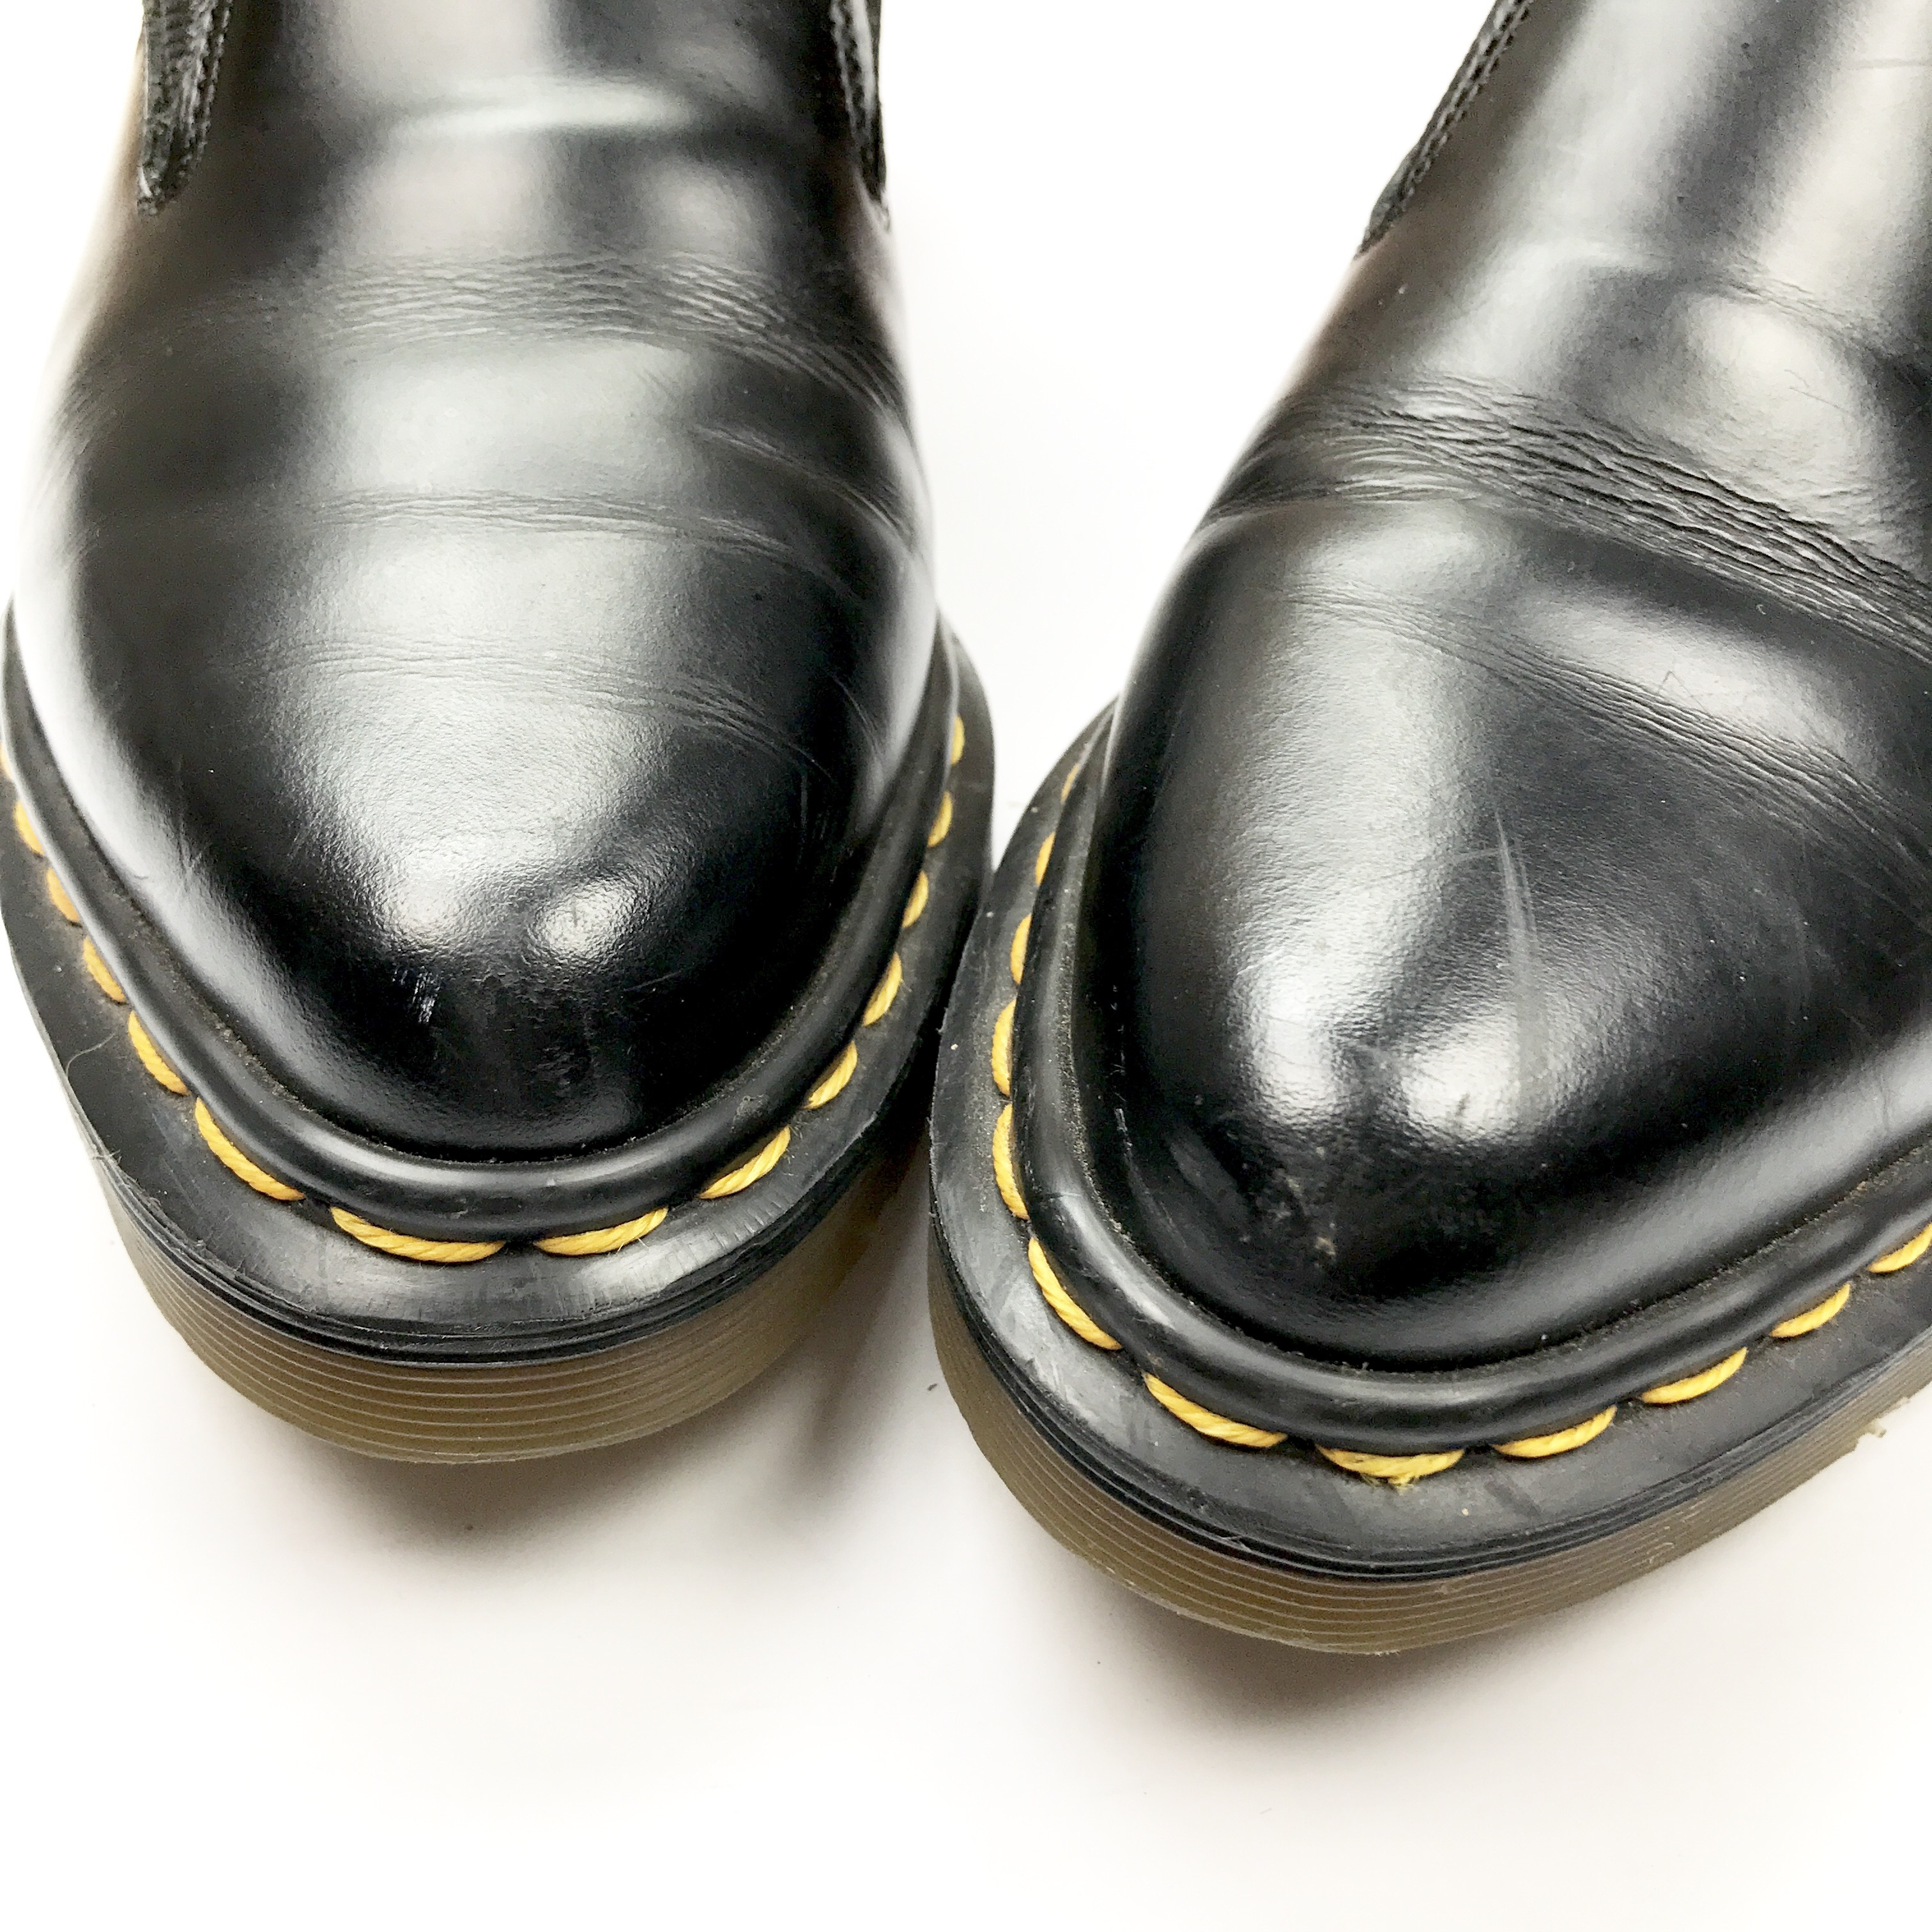 Rare Dr Martens Pointed Toe Boots The